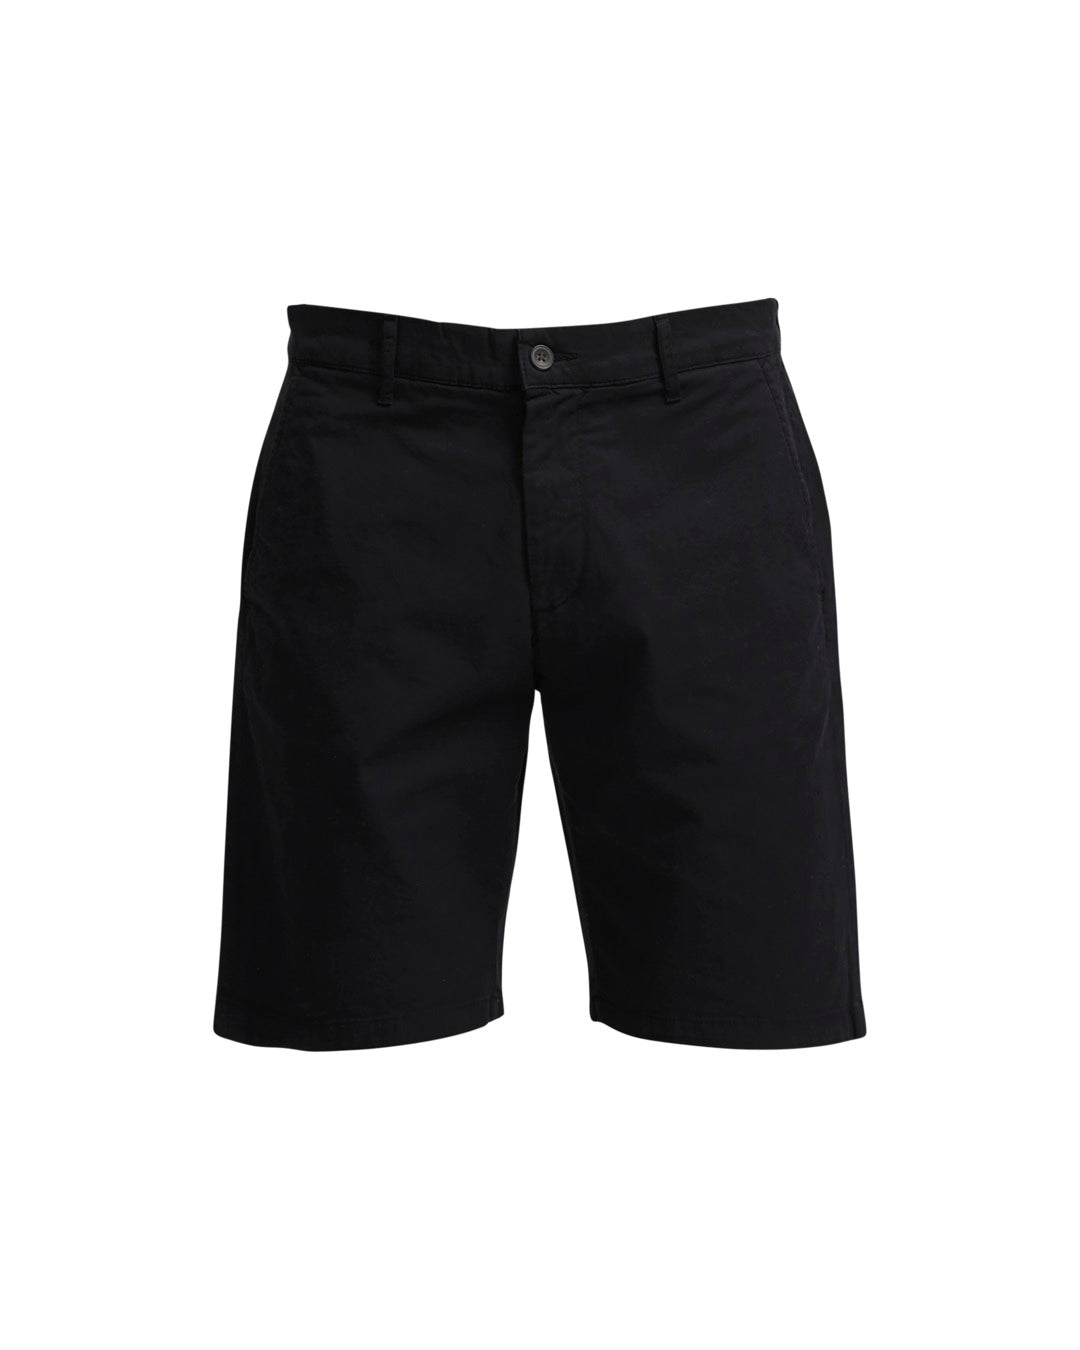 NN07 – CROWN SHORTS 1004 999